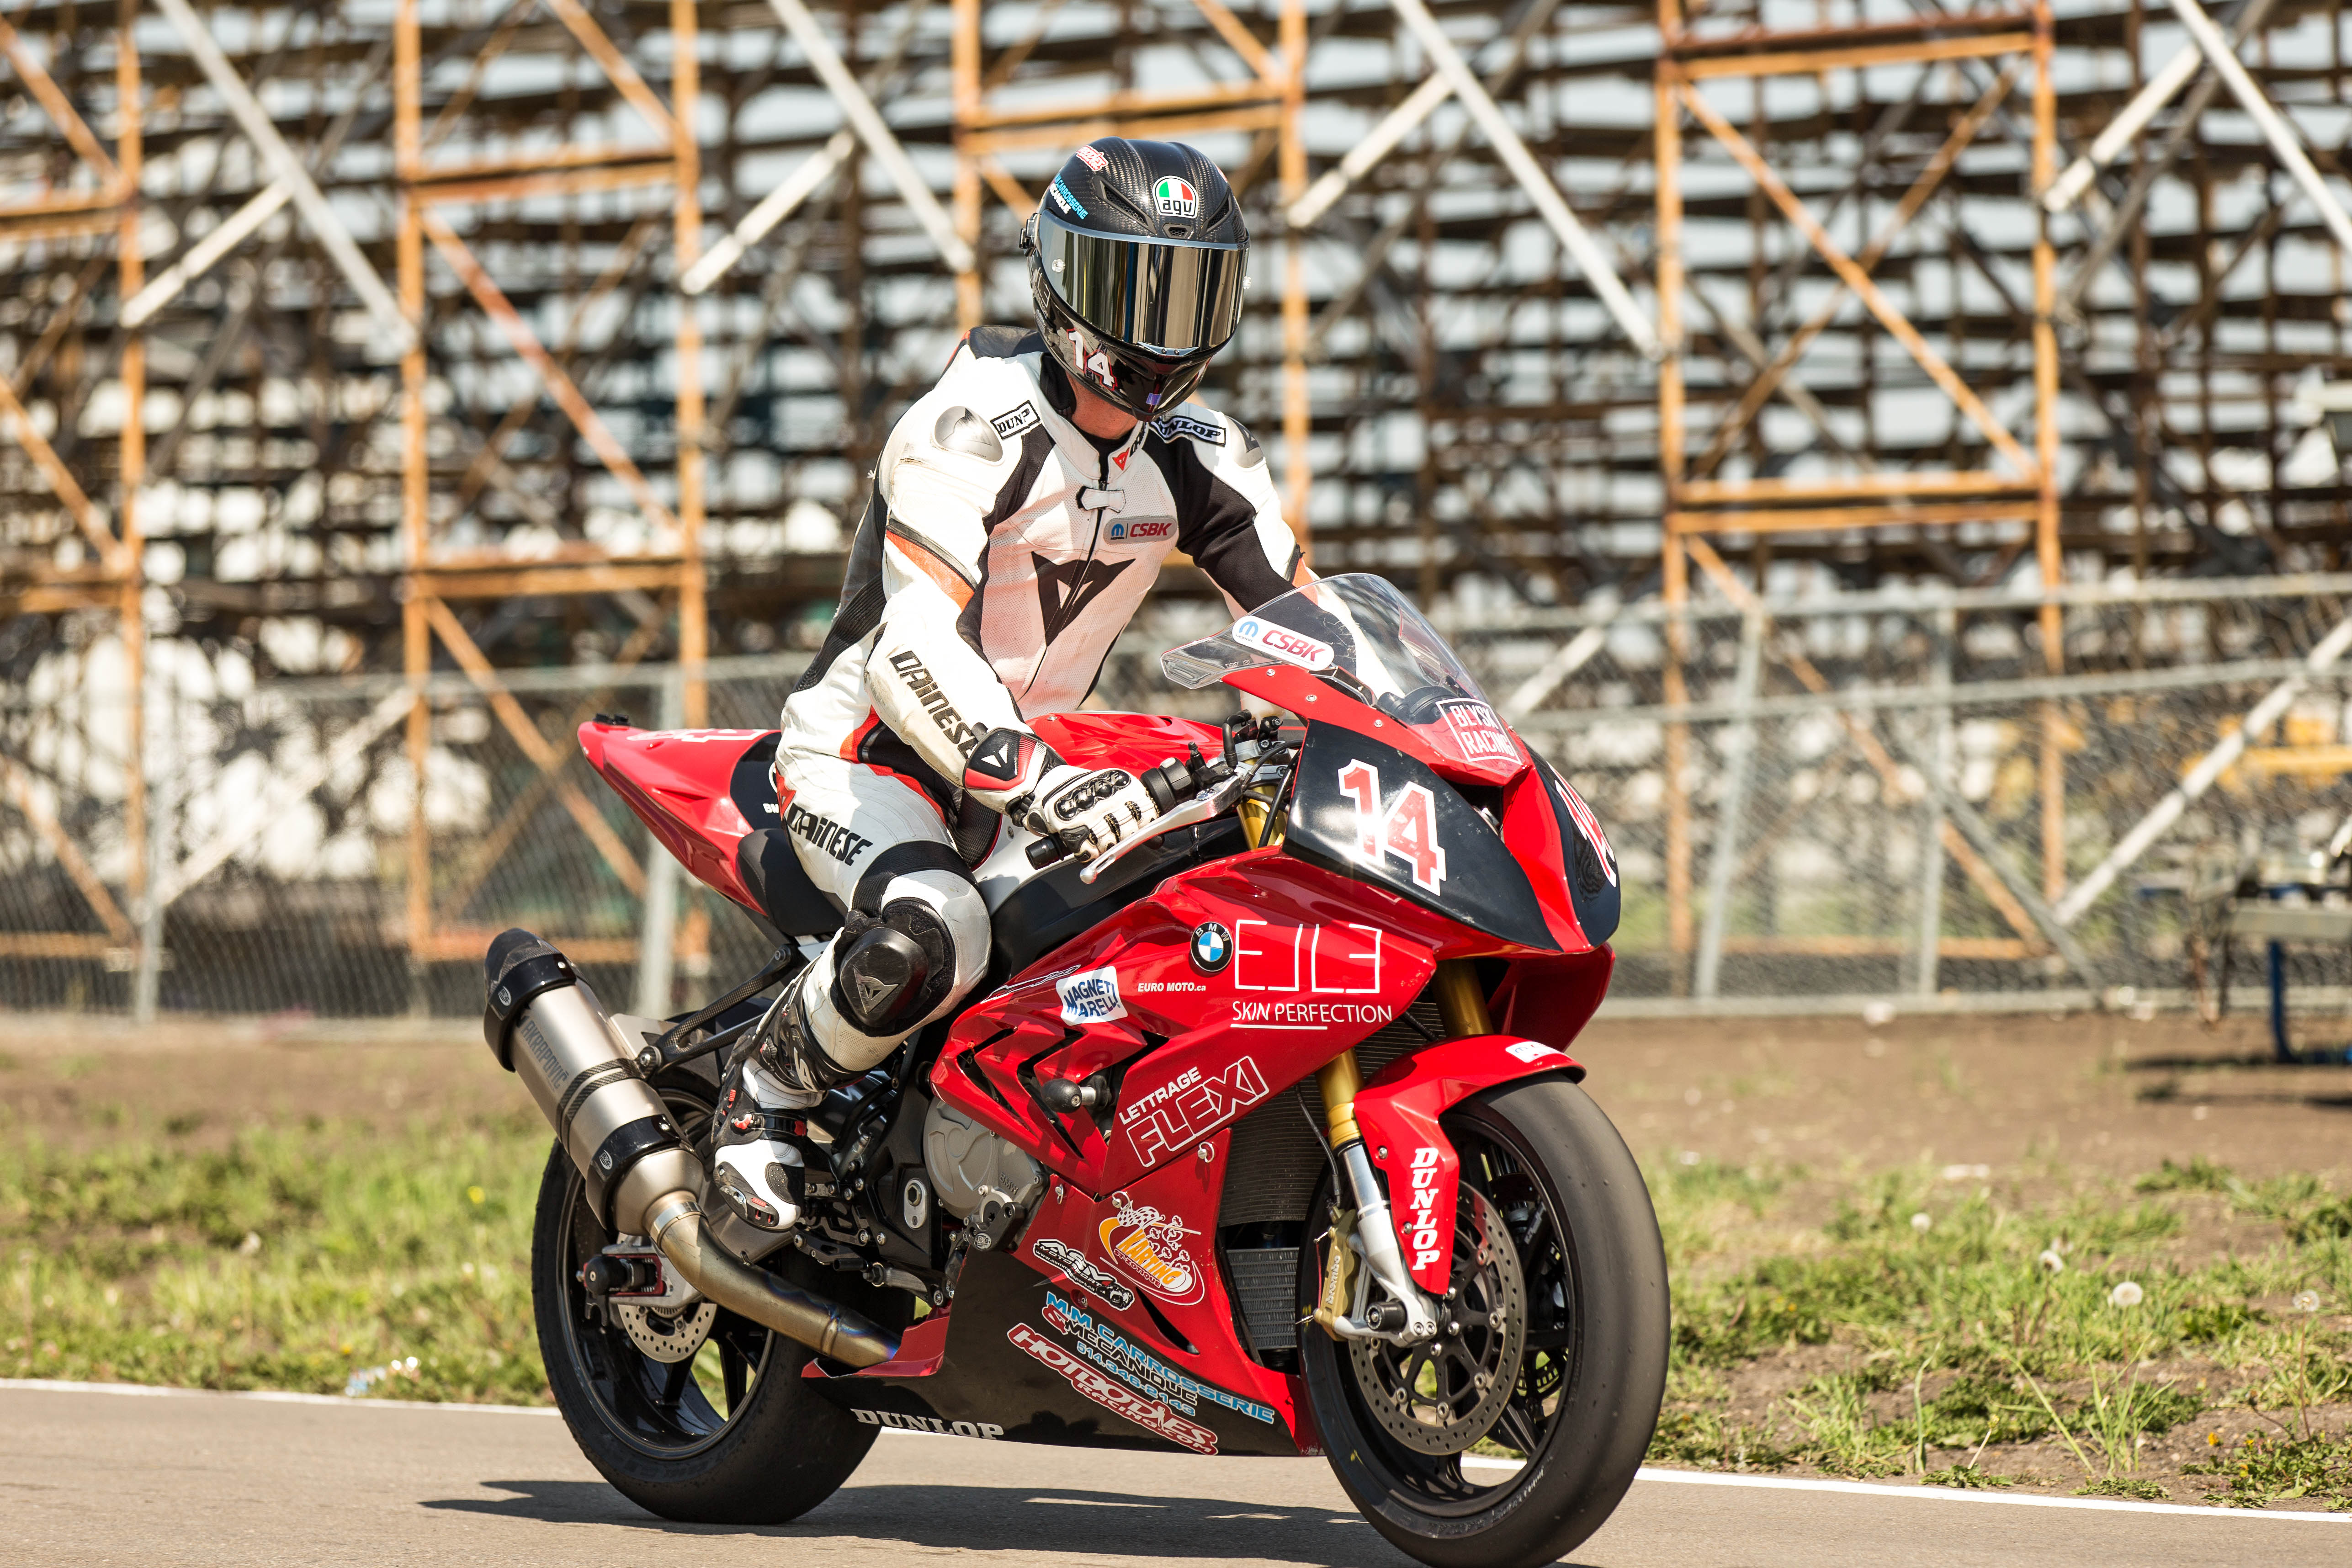 Race Spec 2015 S1000rr From The Csbk Canadian Superbike Championship